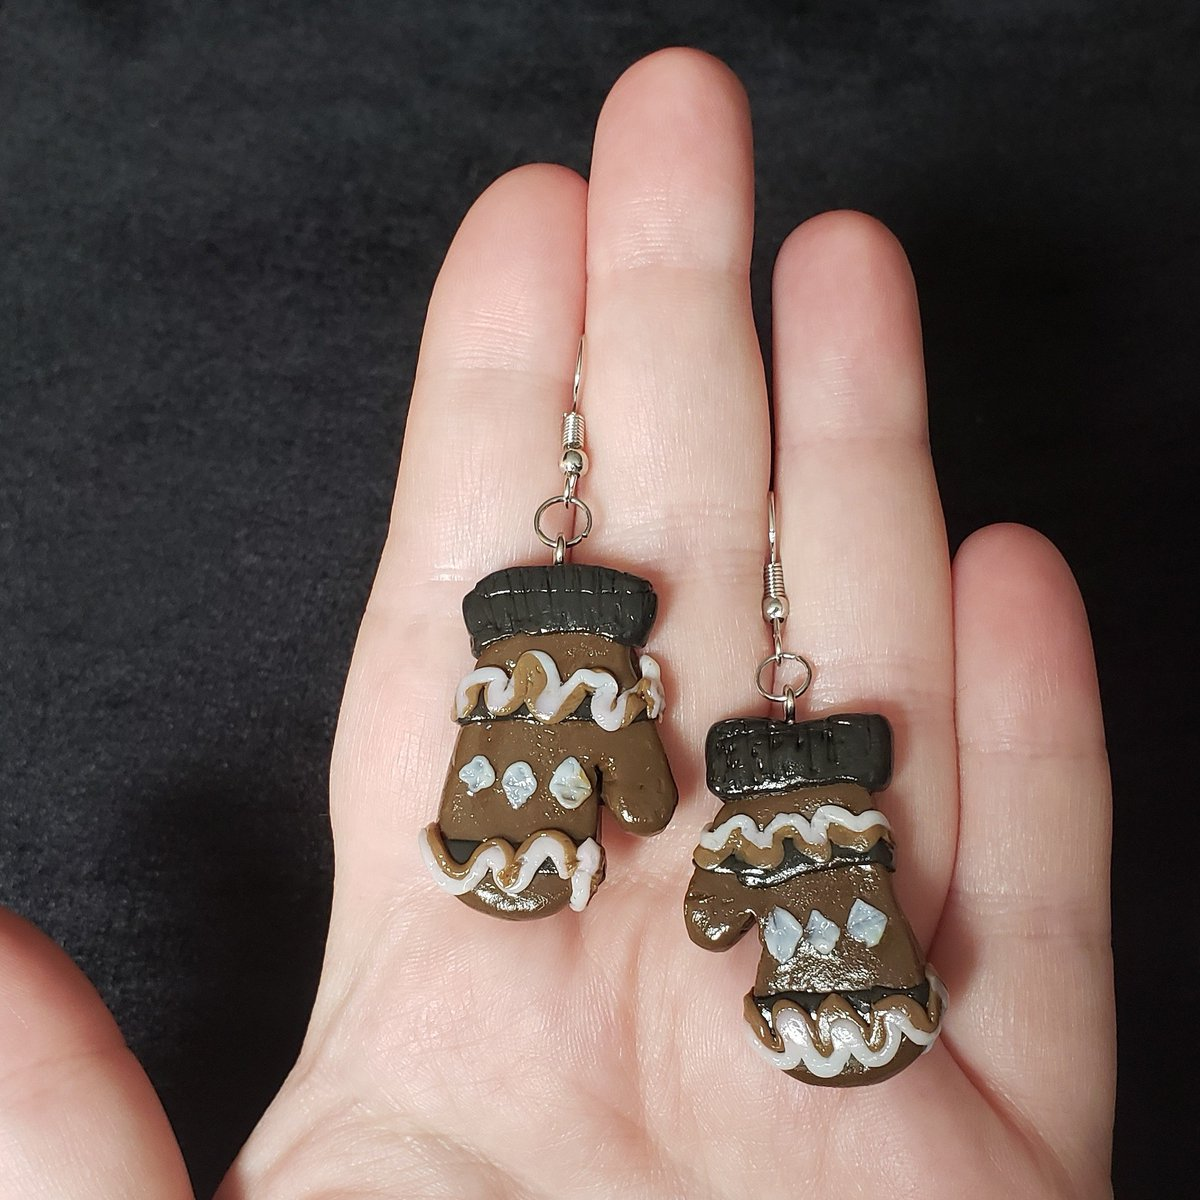 Different version of our Bernie's mitten earrings. Which ones are cuter?  🧤🤎🧤🤎🧤🤎🧤🤎🧤🤎🧤 #smallbusiness #shopsmall #promote #promoteyourbusiness #noxoccultus #earrings #mitten #bernie #berniesanders #berniesandersmemes